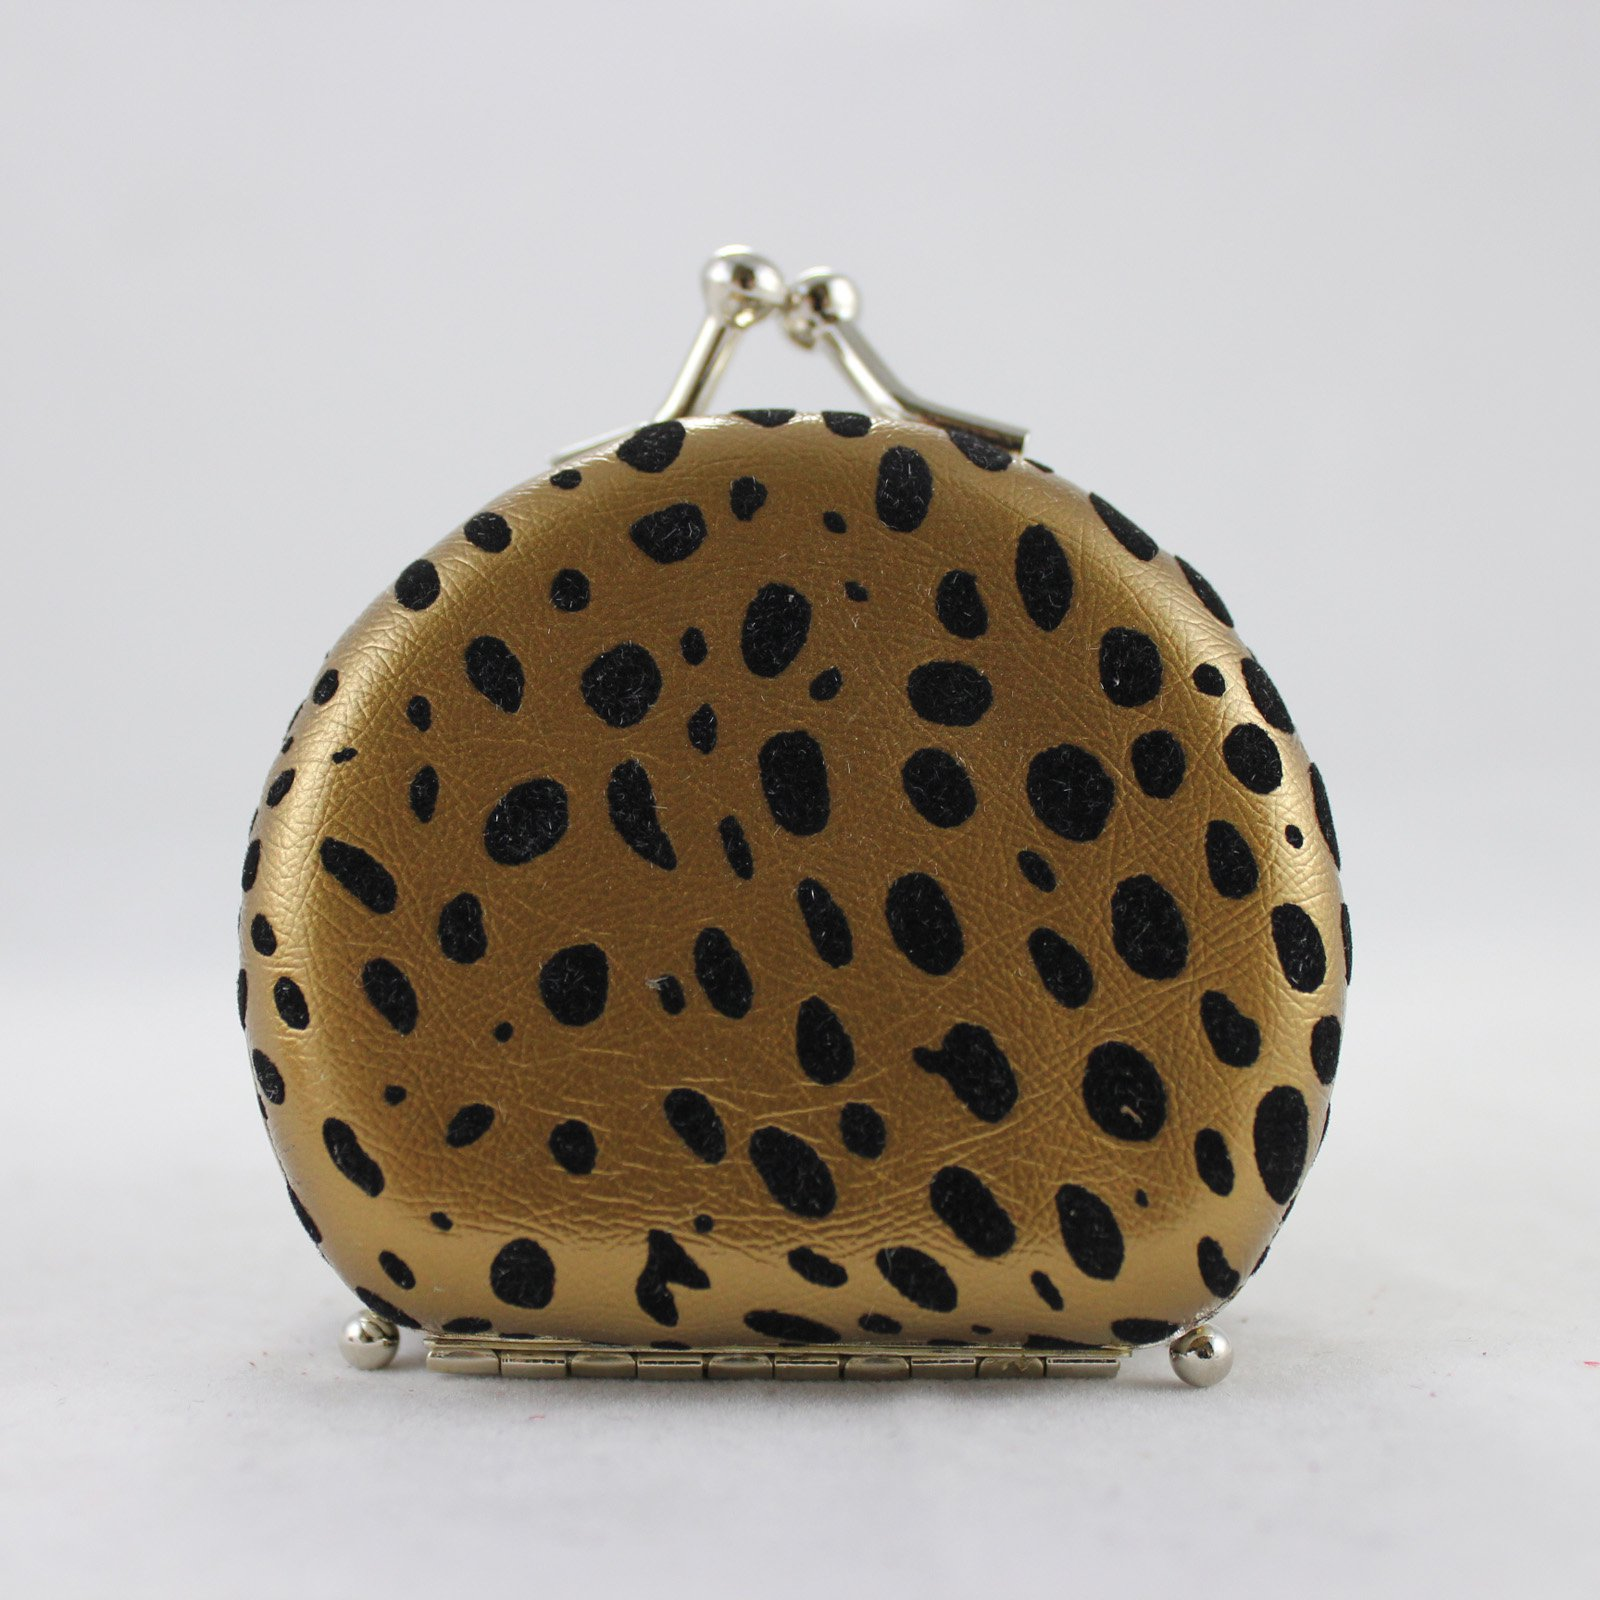 Round Leopard Print Jewelry Travel Case - Gold - 2.6L x 2.2W in.